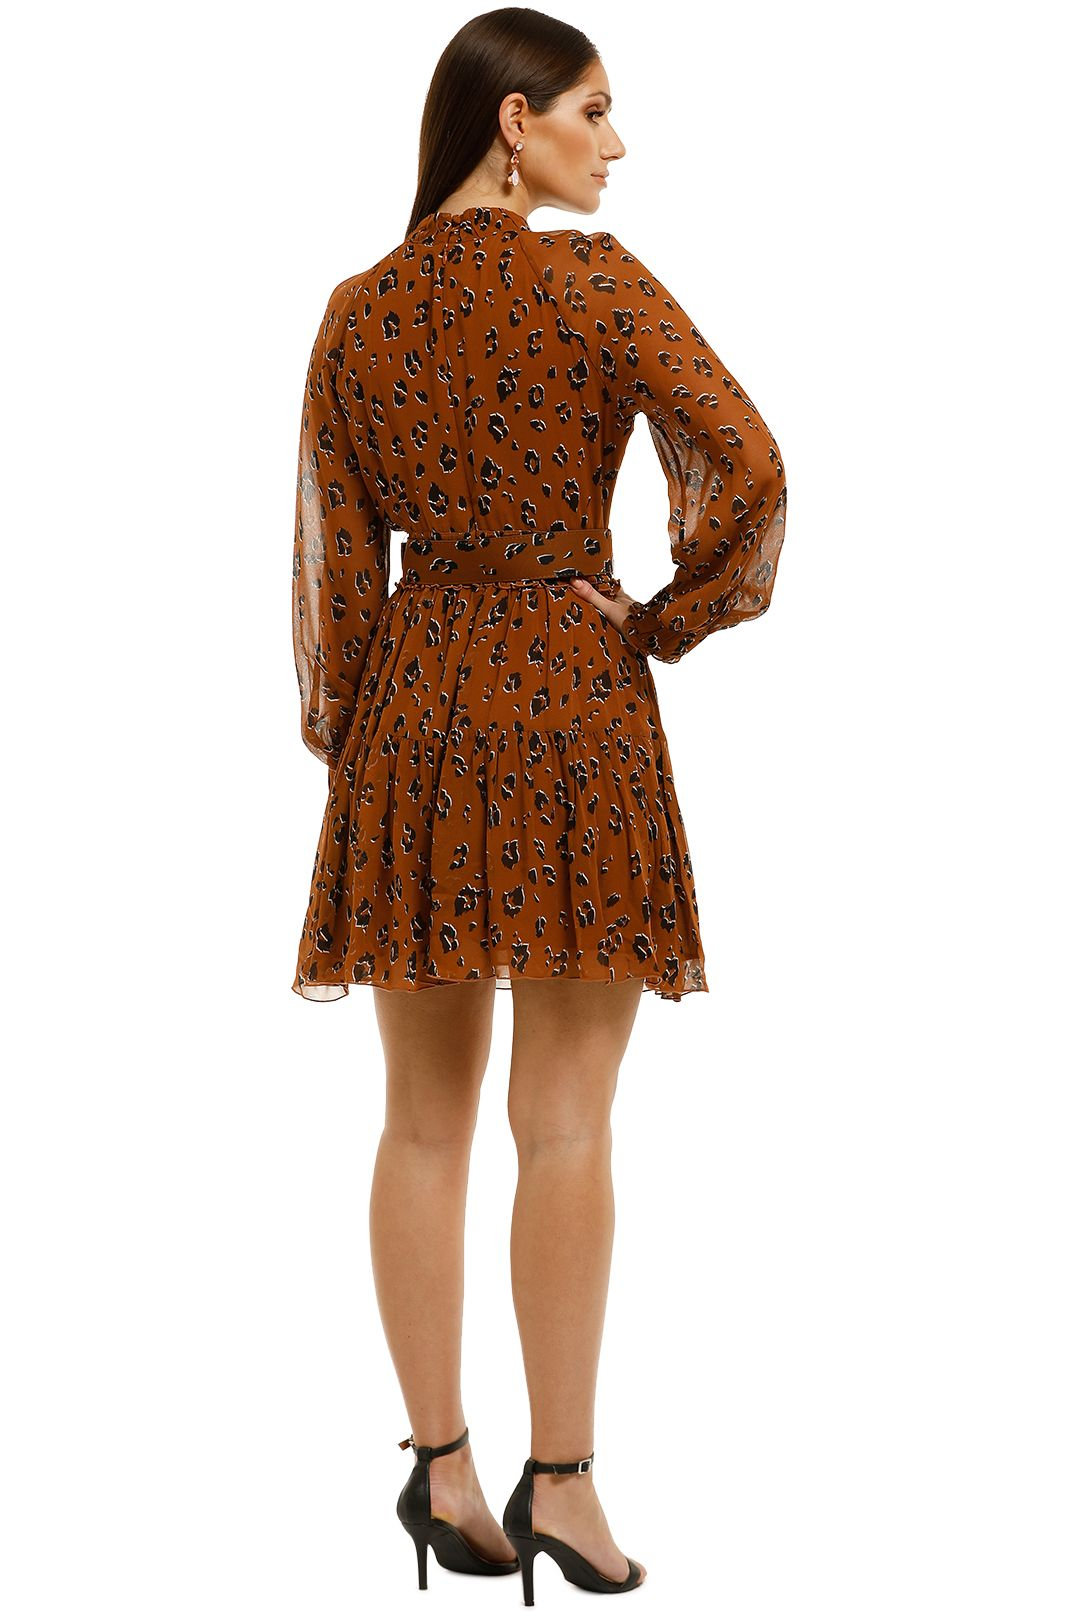 Nicholas-The-Label-High-Neck-Button-Mini-Dress-Tobacco-Multi-Back